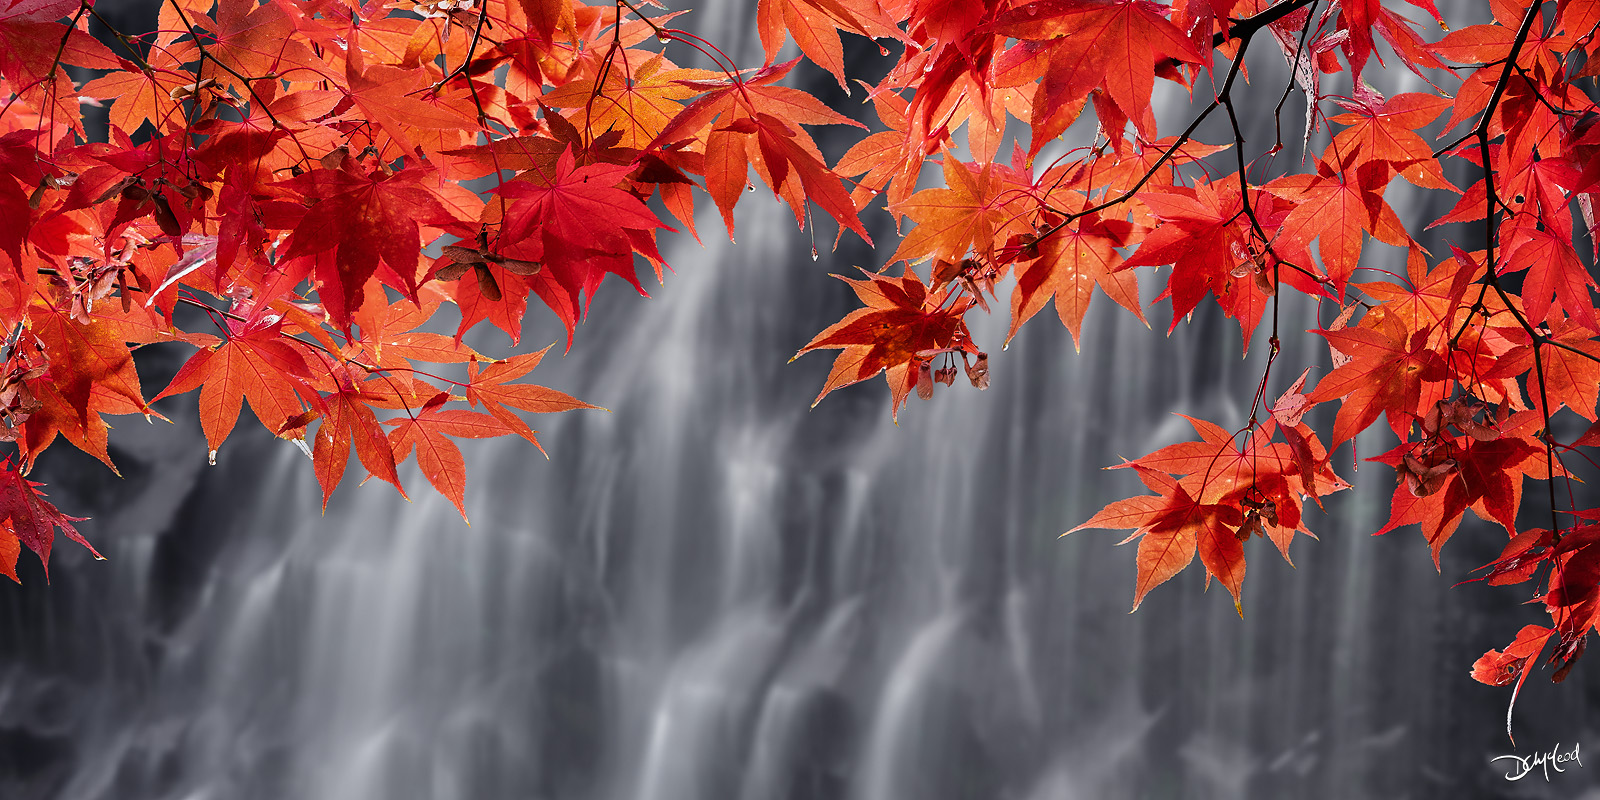 Branches of red maple leaves hang in front of a gently cascading waterfall on Vancouver Island, Canada.